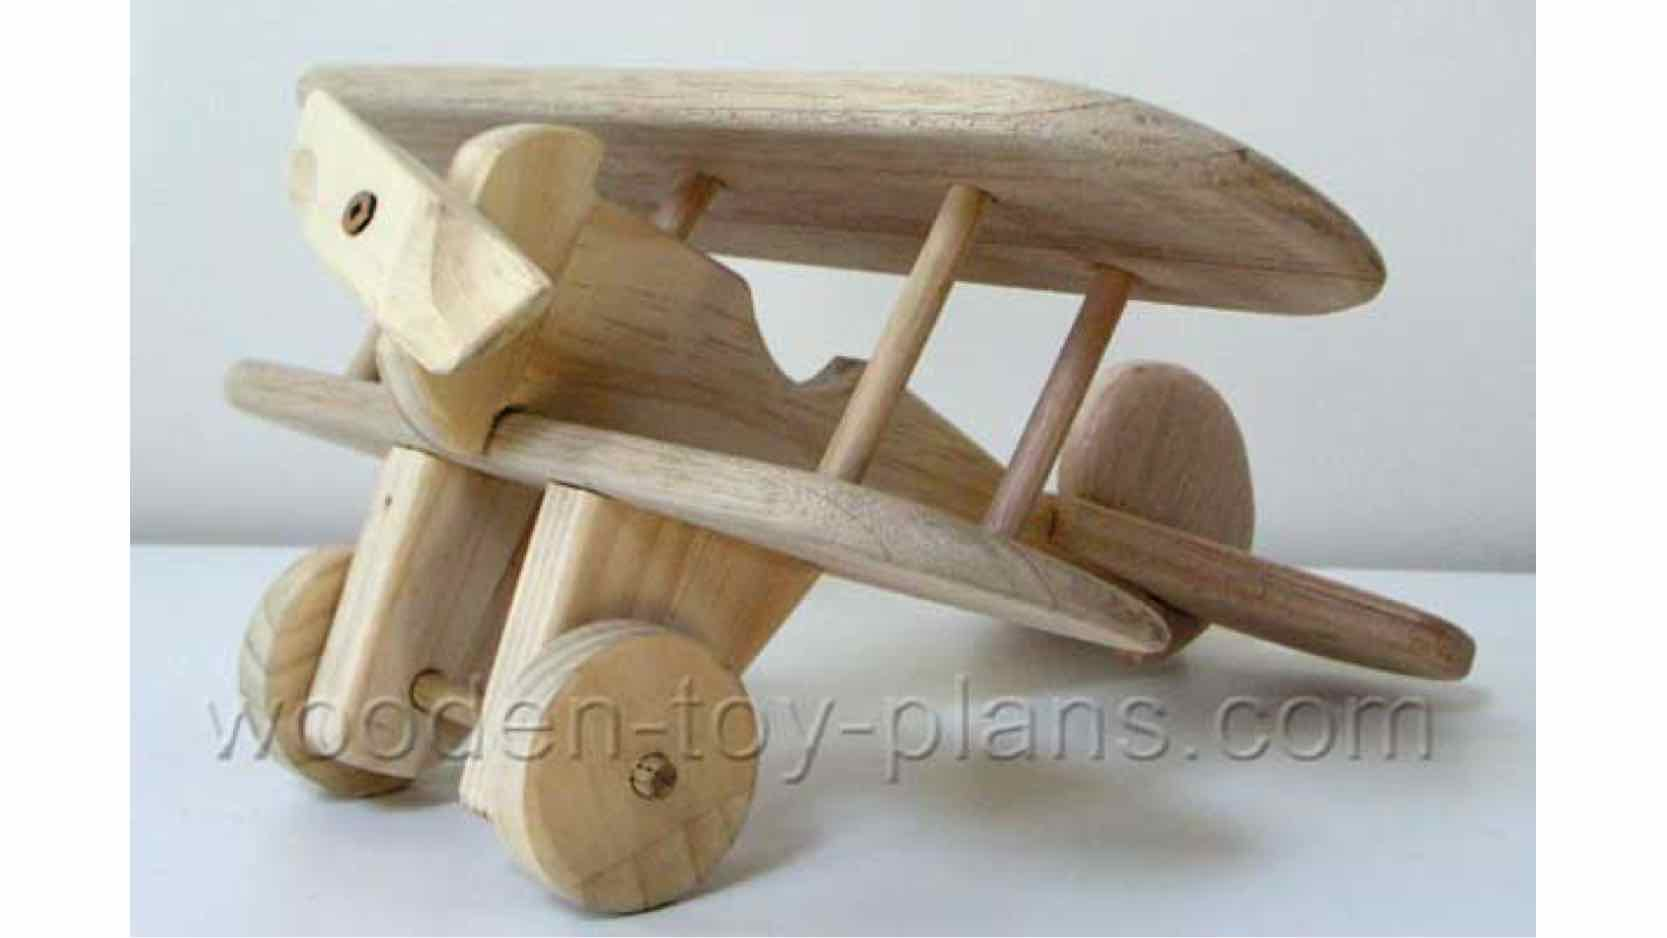 toy airplane,wooden,childrens,free woodworking plans,projects,diy,childs,kids,planes,wooden toys